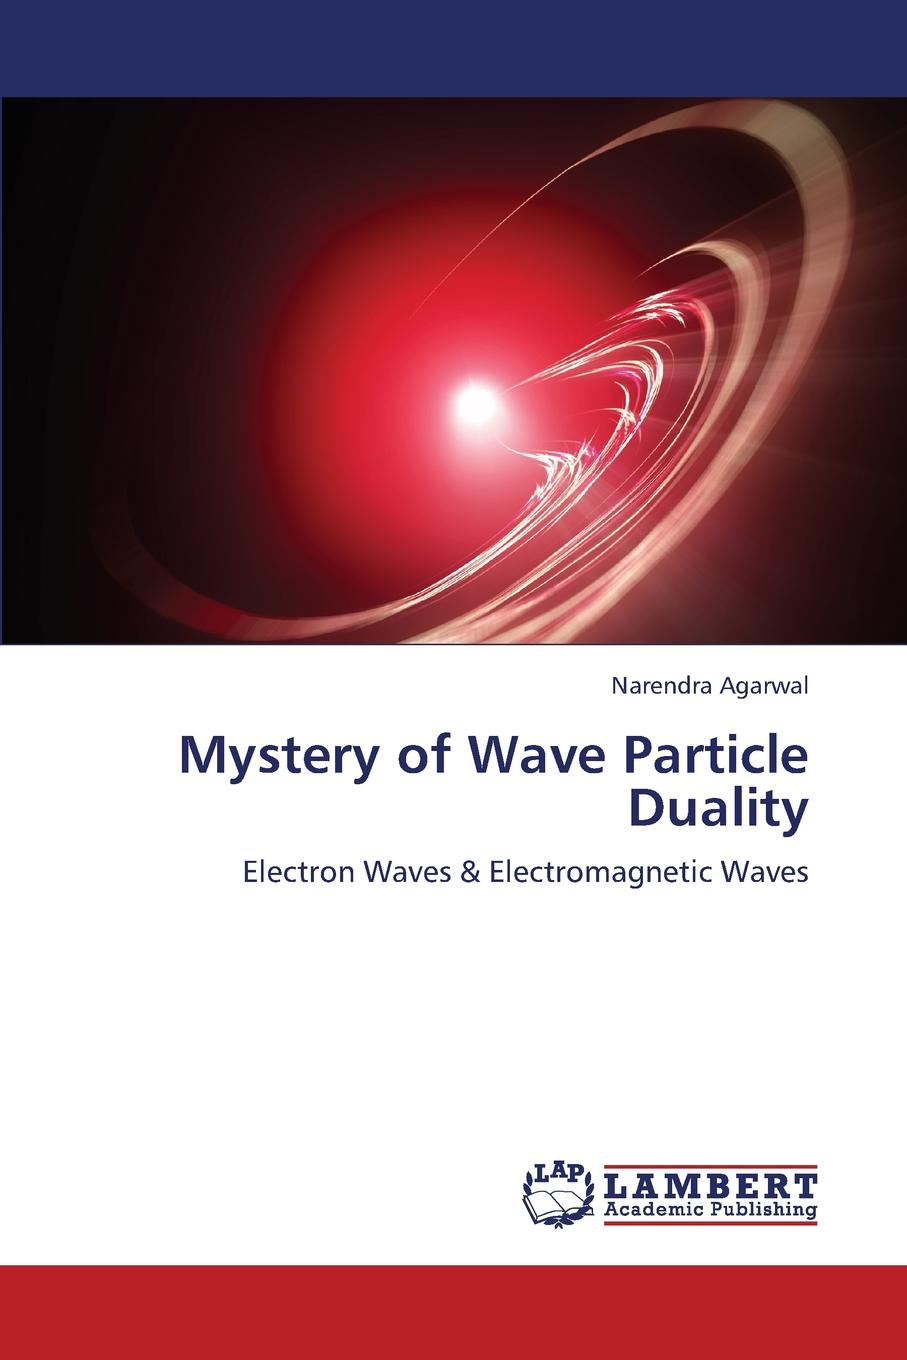 Agarwal Narendra Mystery of Wave Particle Duality date with mystery